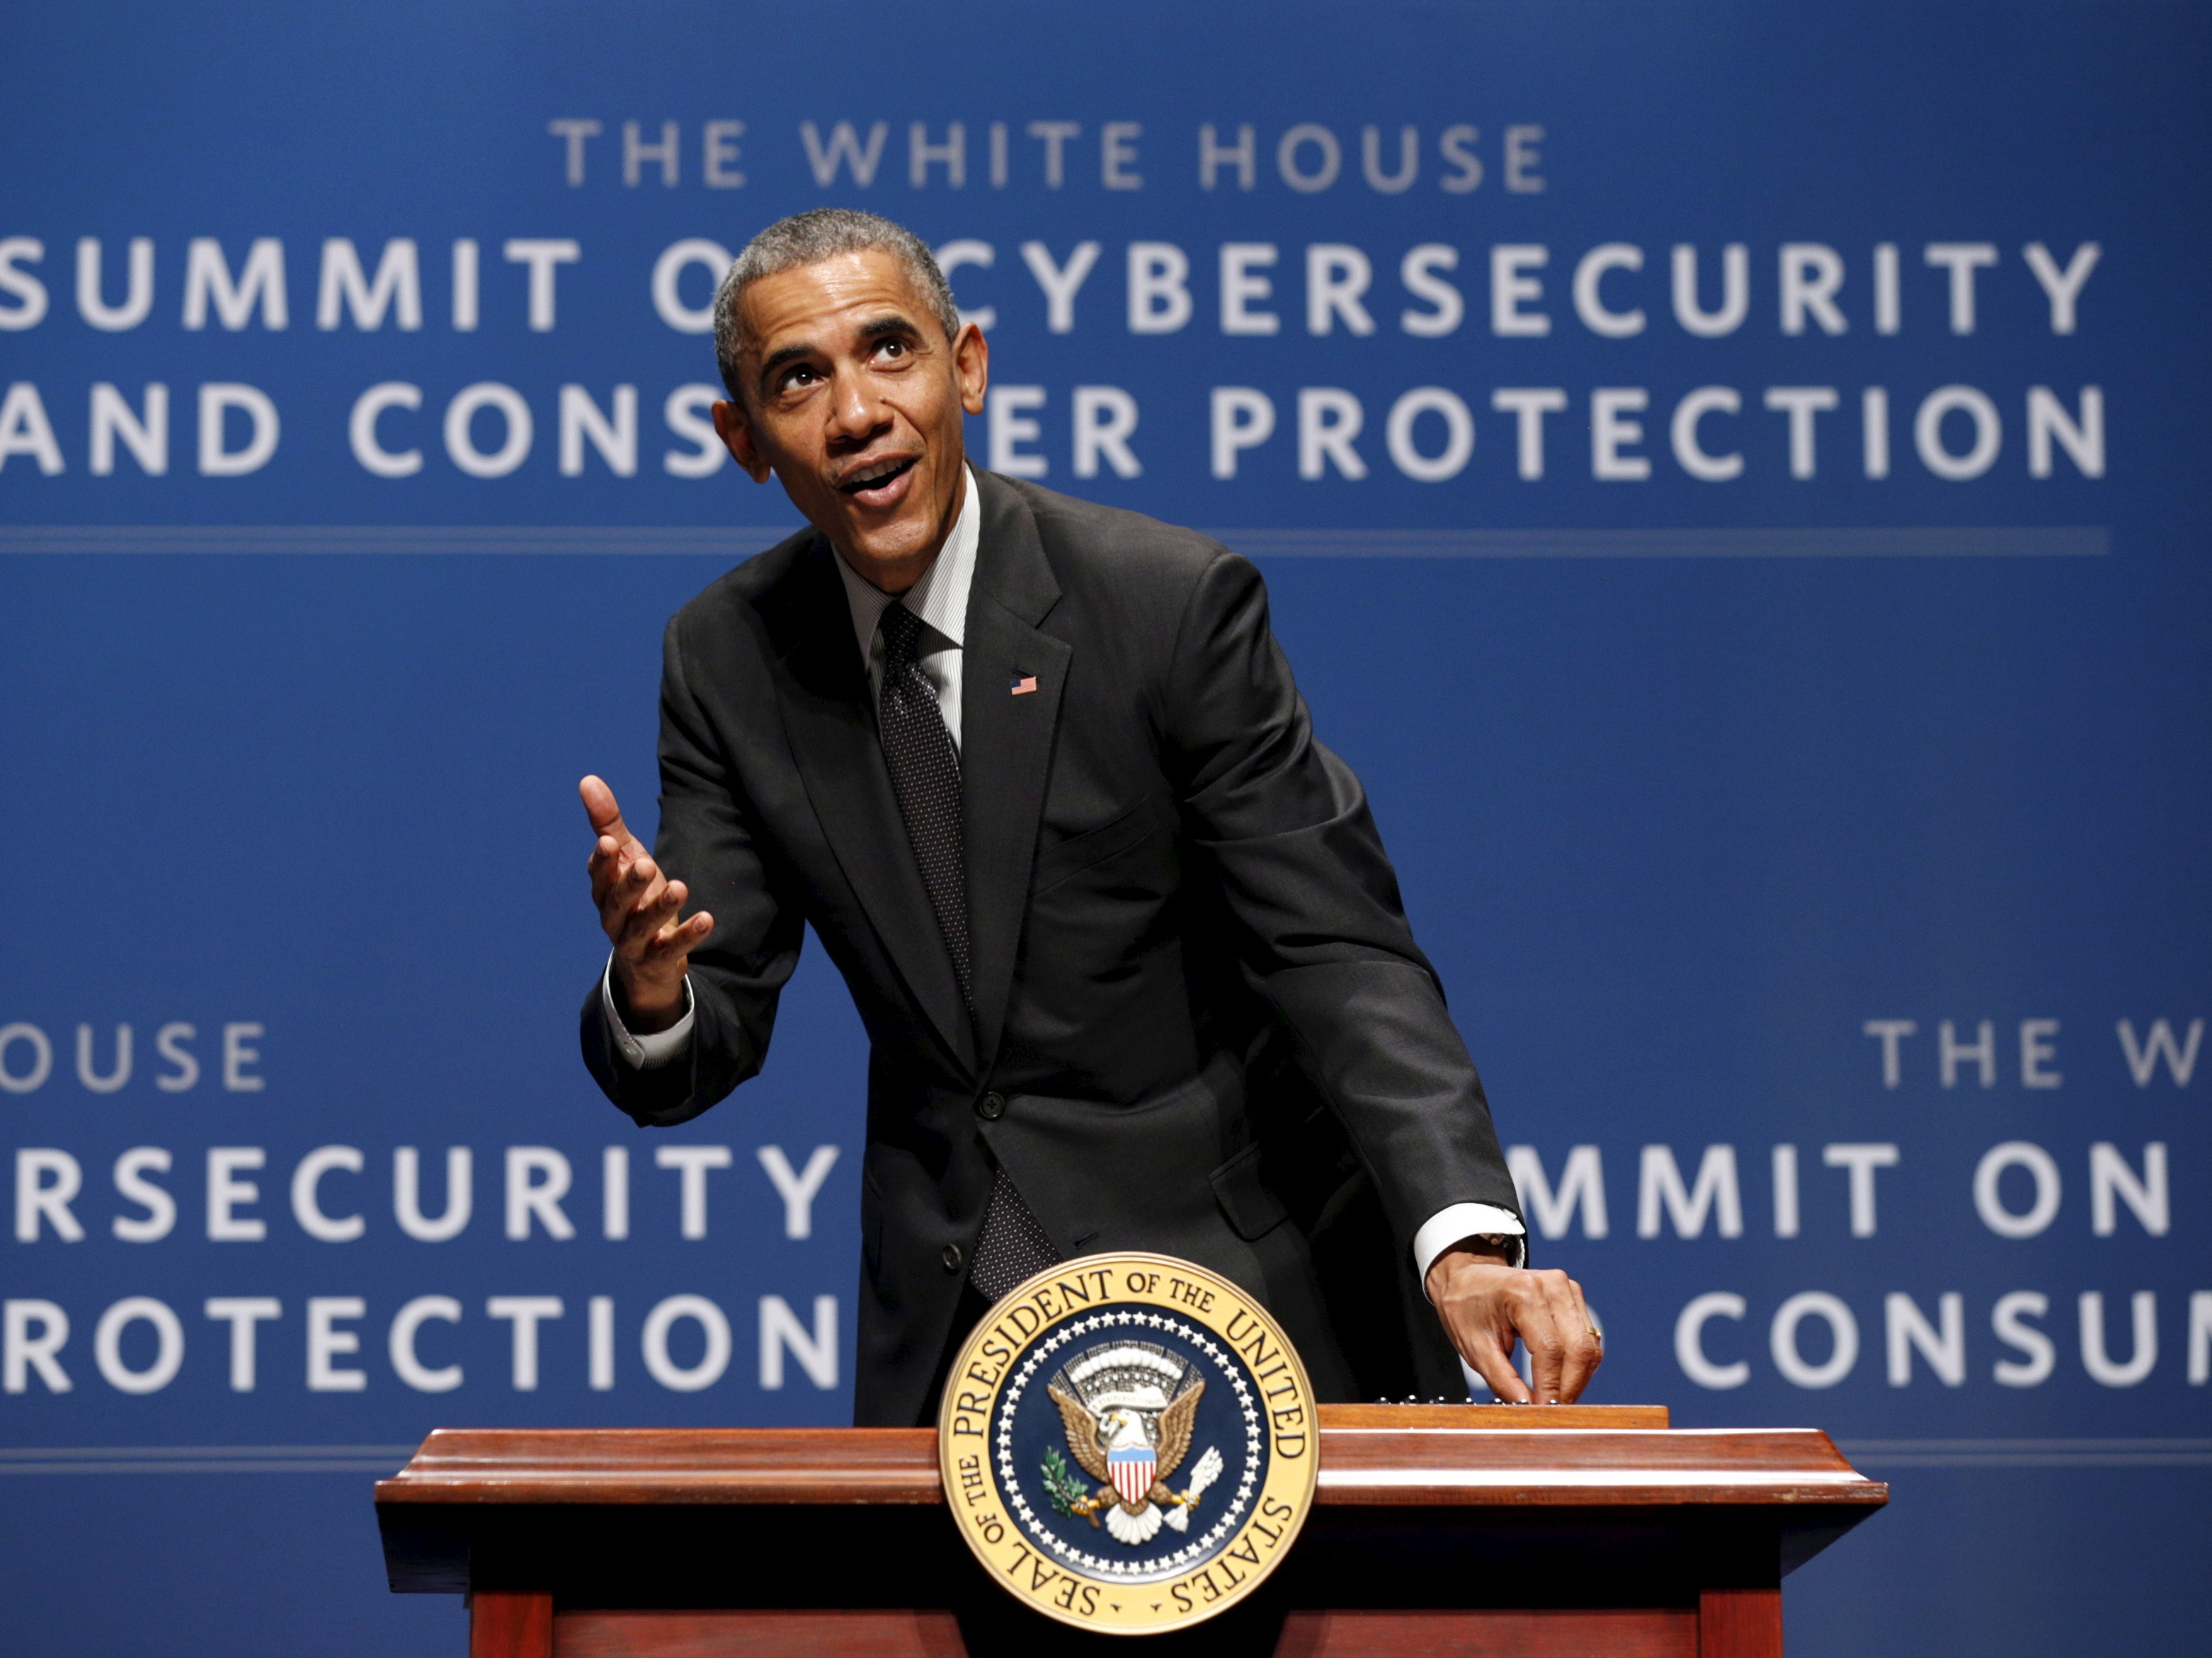 Senate Approves Cybersecurity Bill: What You Need To Know